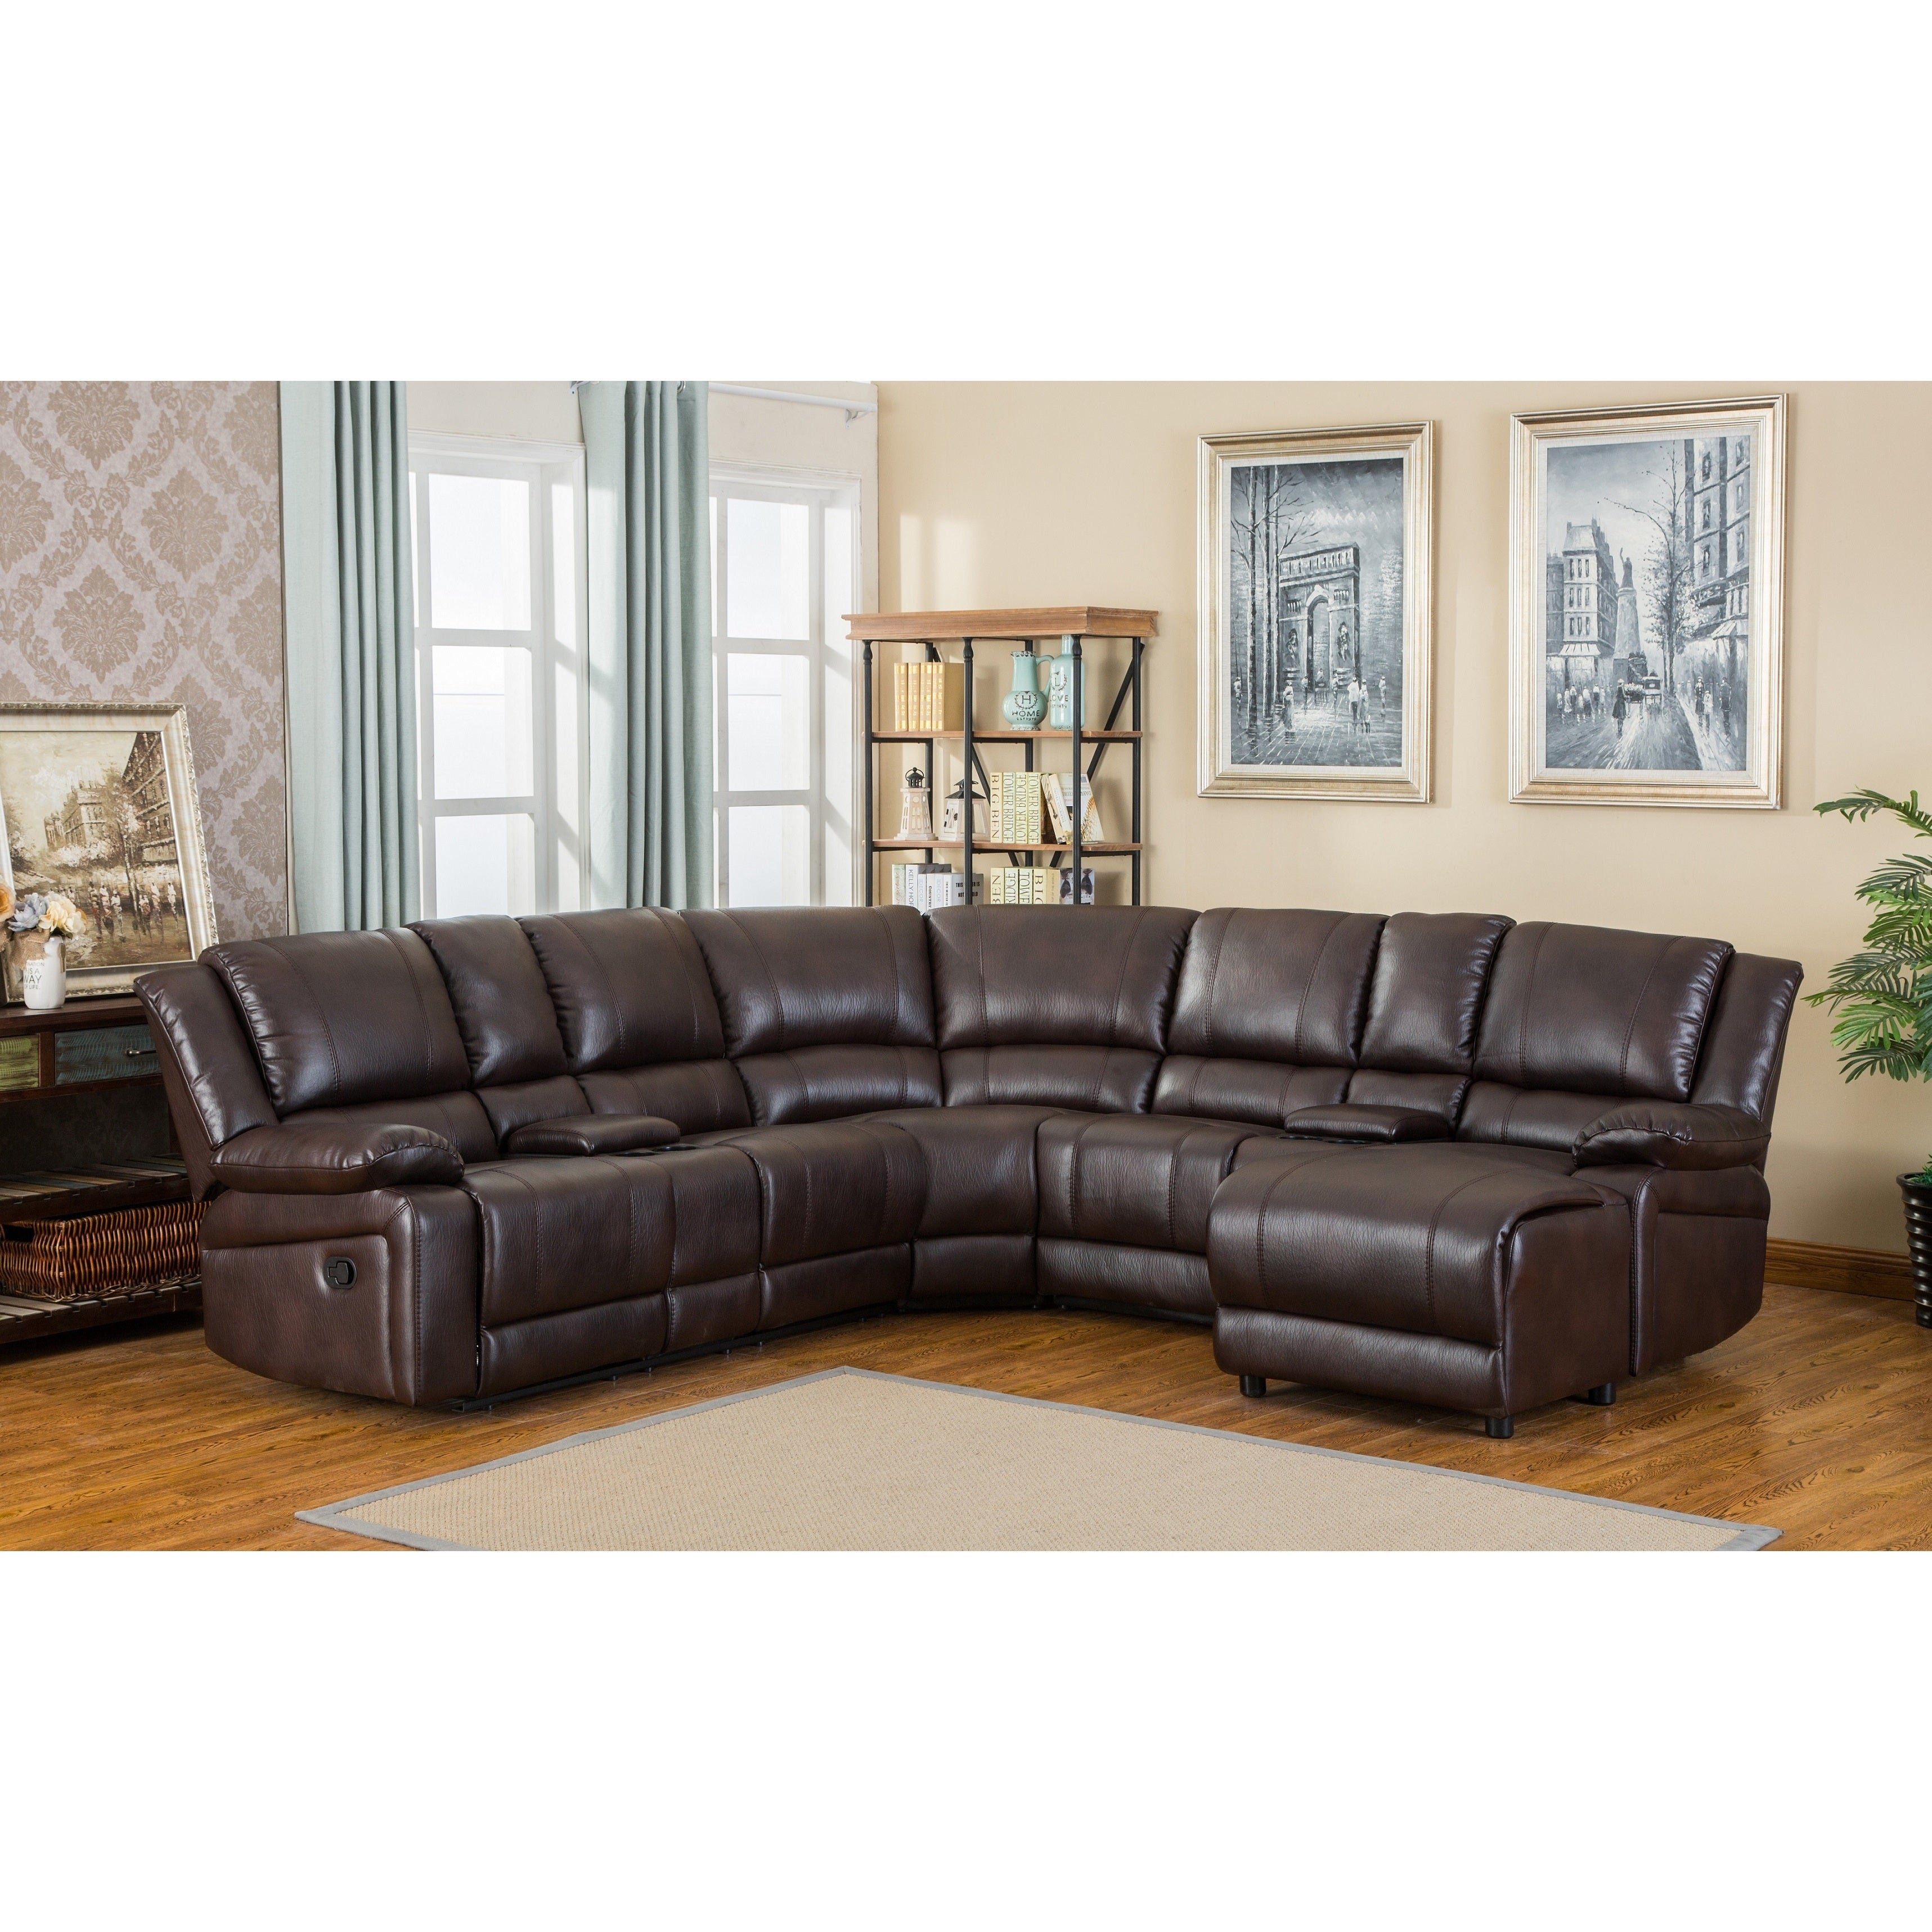 Juno Brown Air-Leather Sectional Reclining Sofa with Cons...